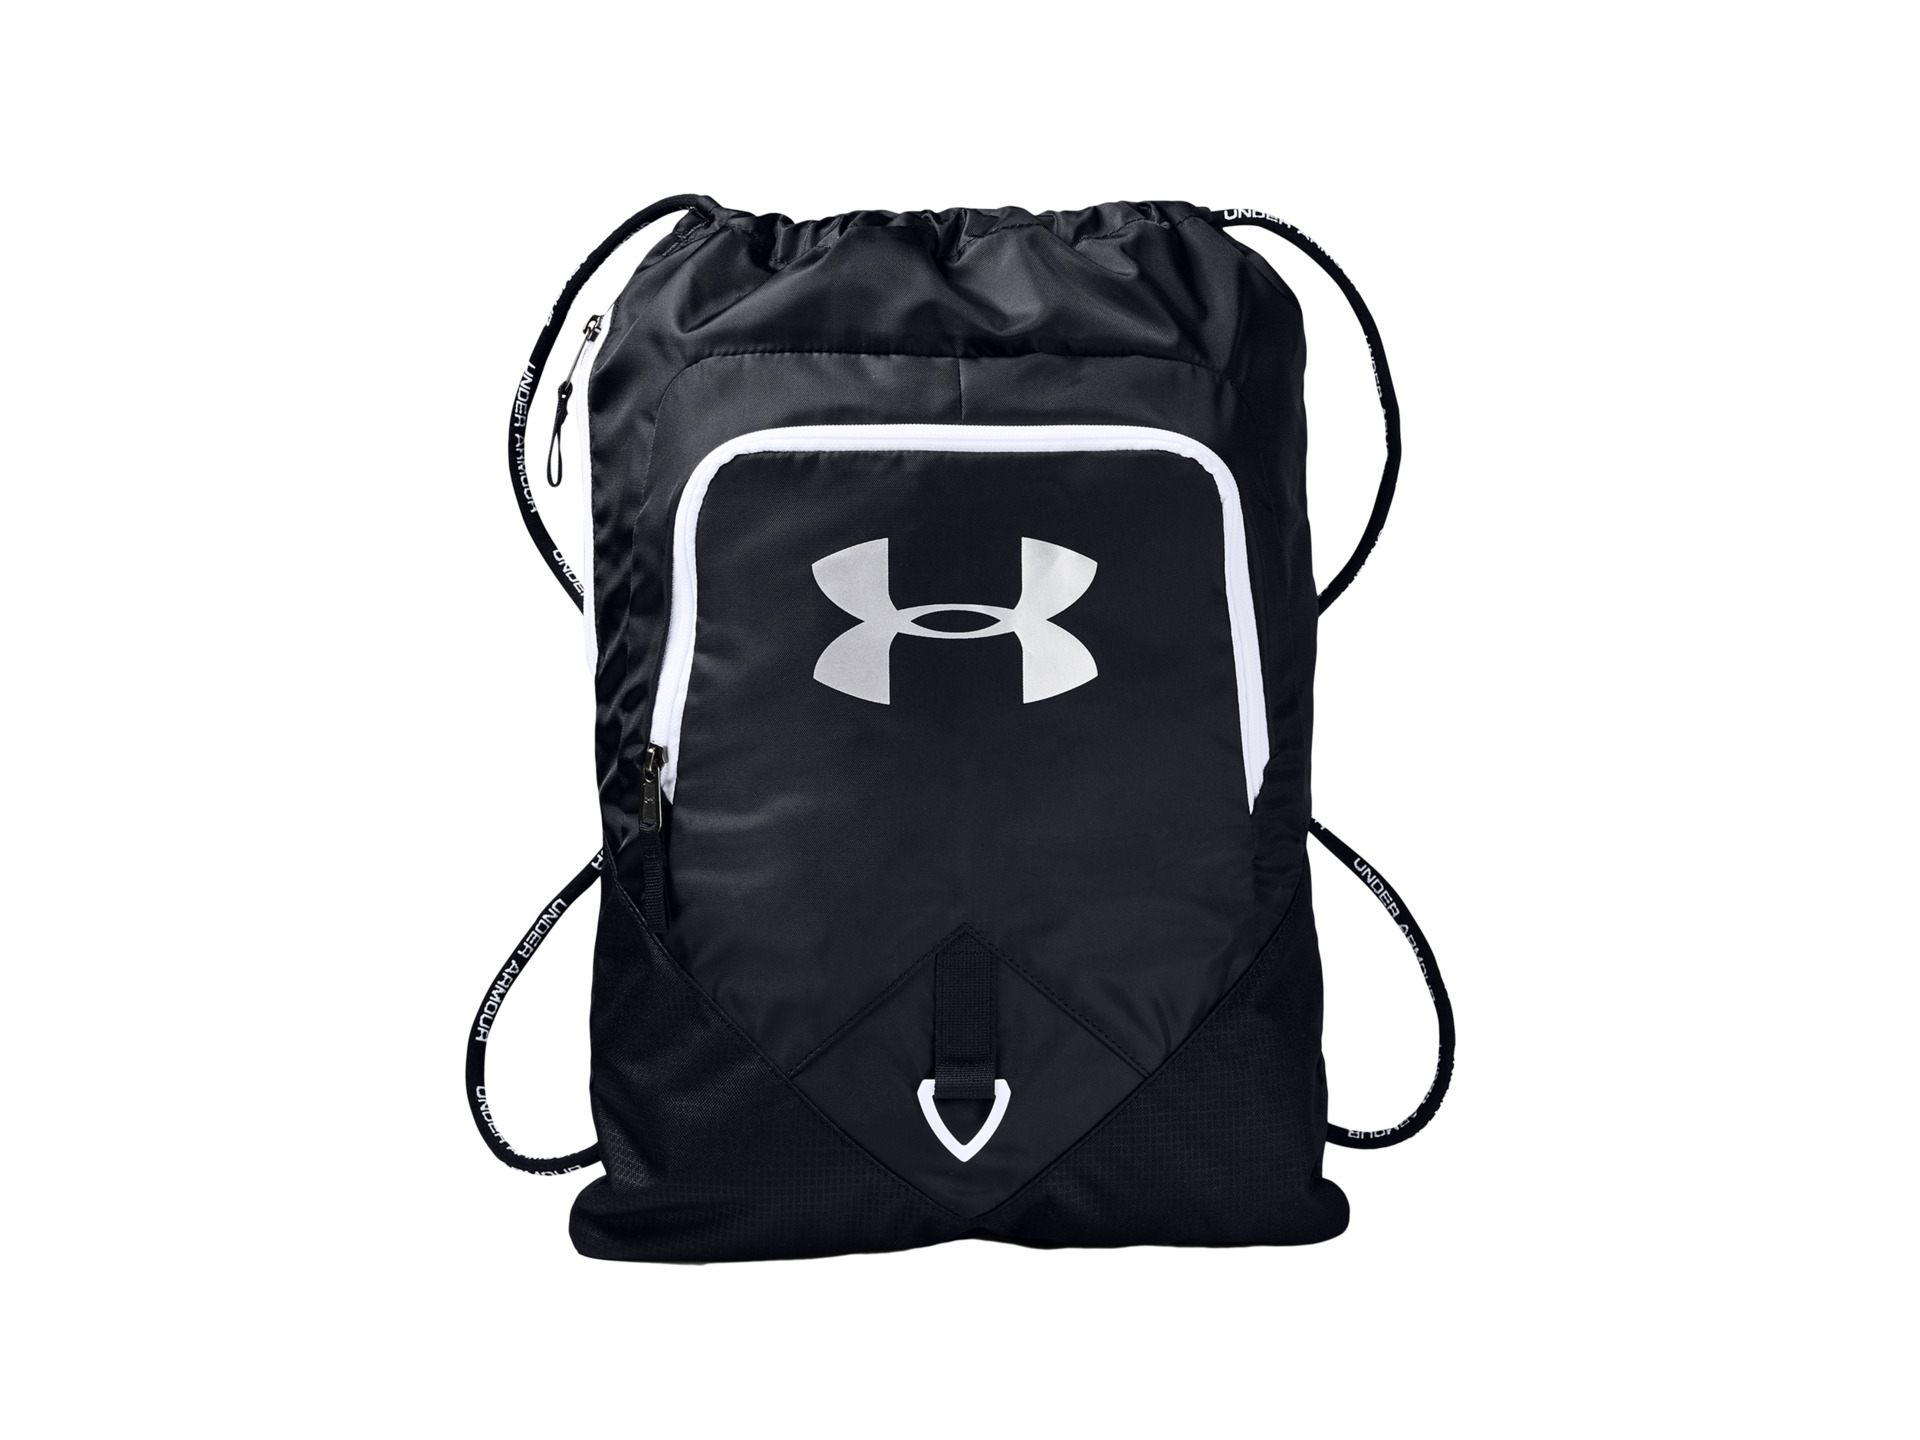 681eaa2a42 under armour tennis bag cheap   OFF31% The Largest Catalog Discounts